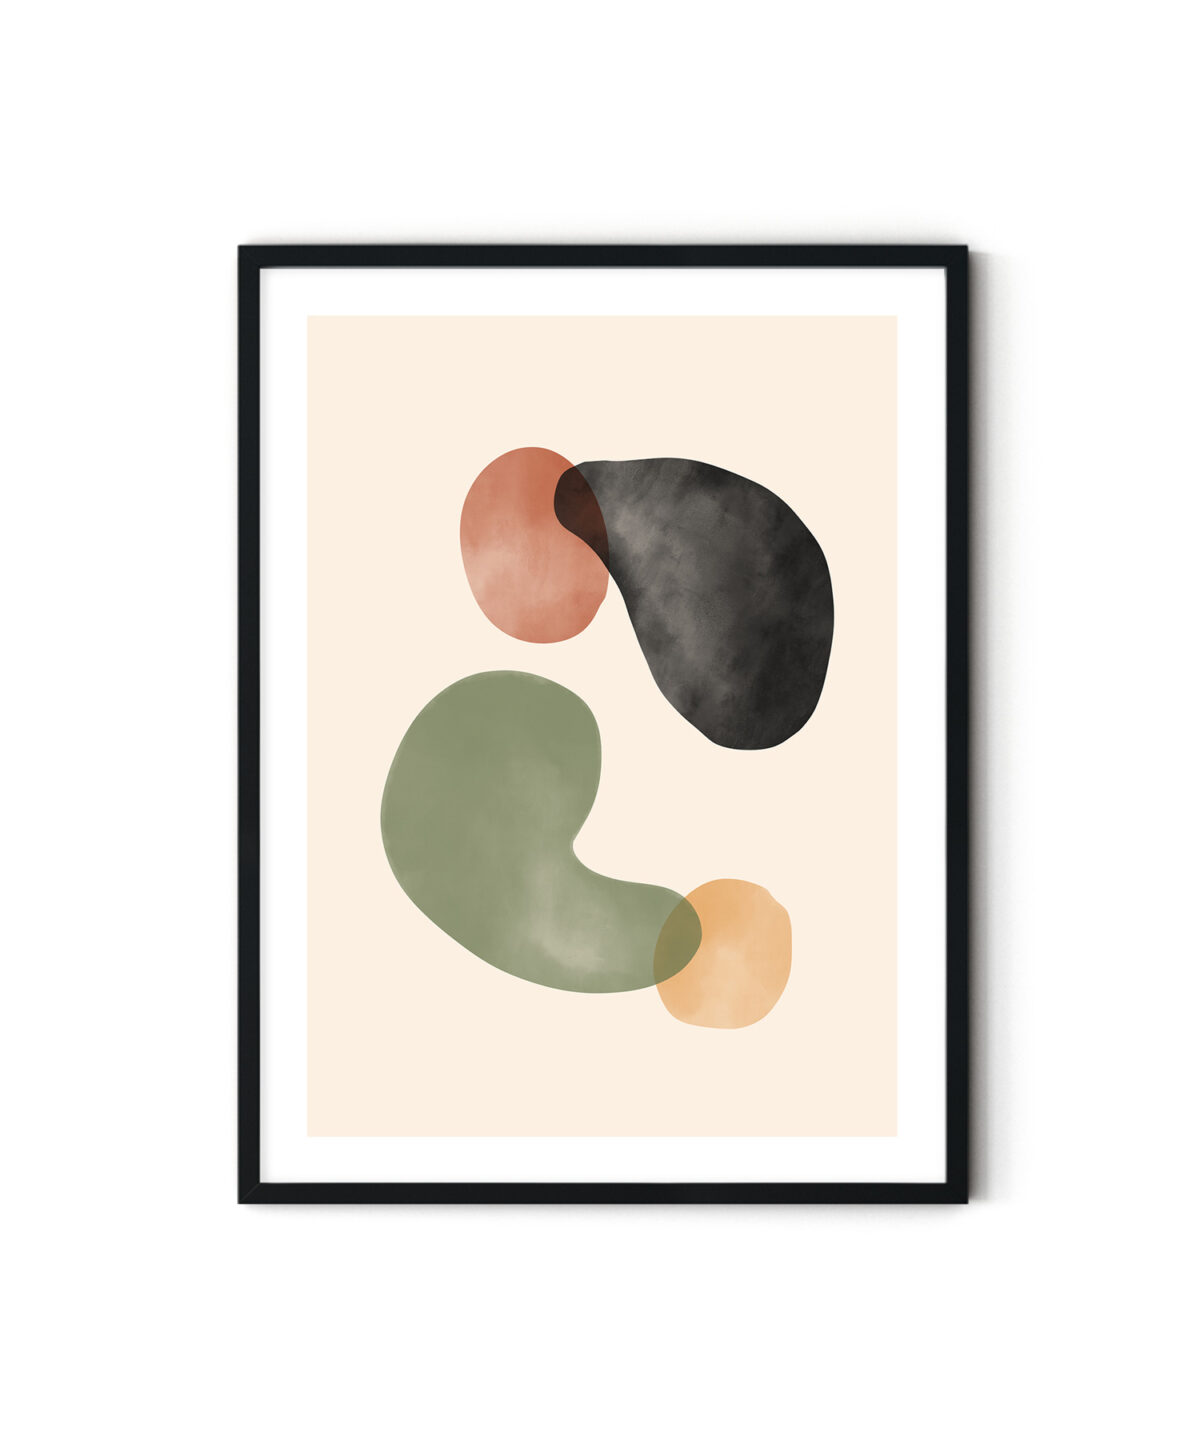 Soyut Abstract Poster